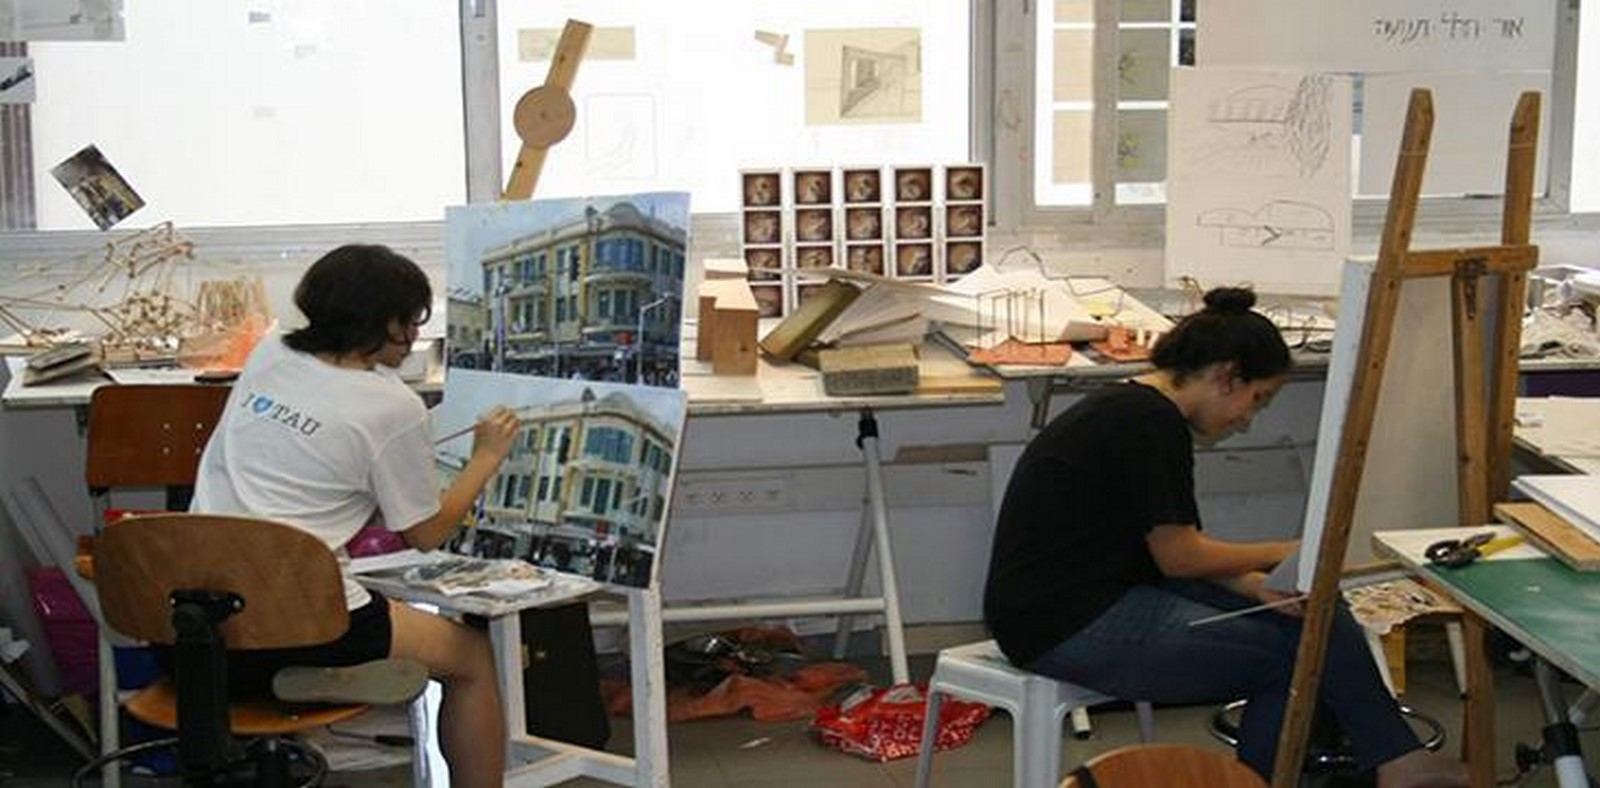 Artistic subjects in architecture school, and why we must pay attention - Sheet1